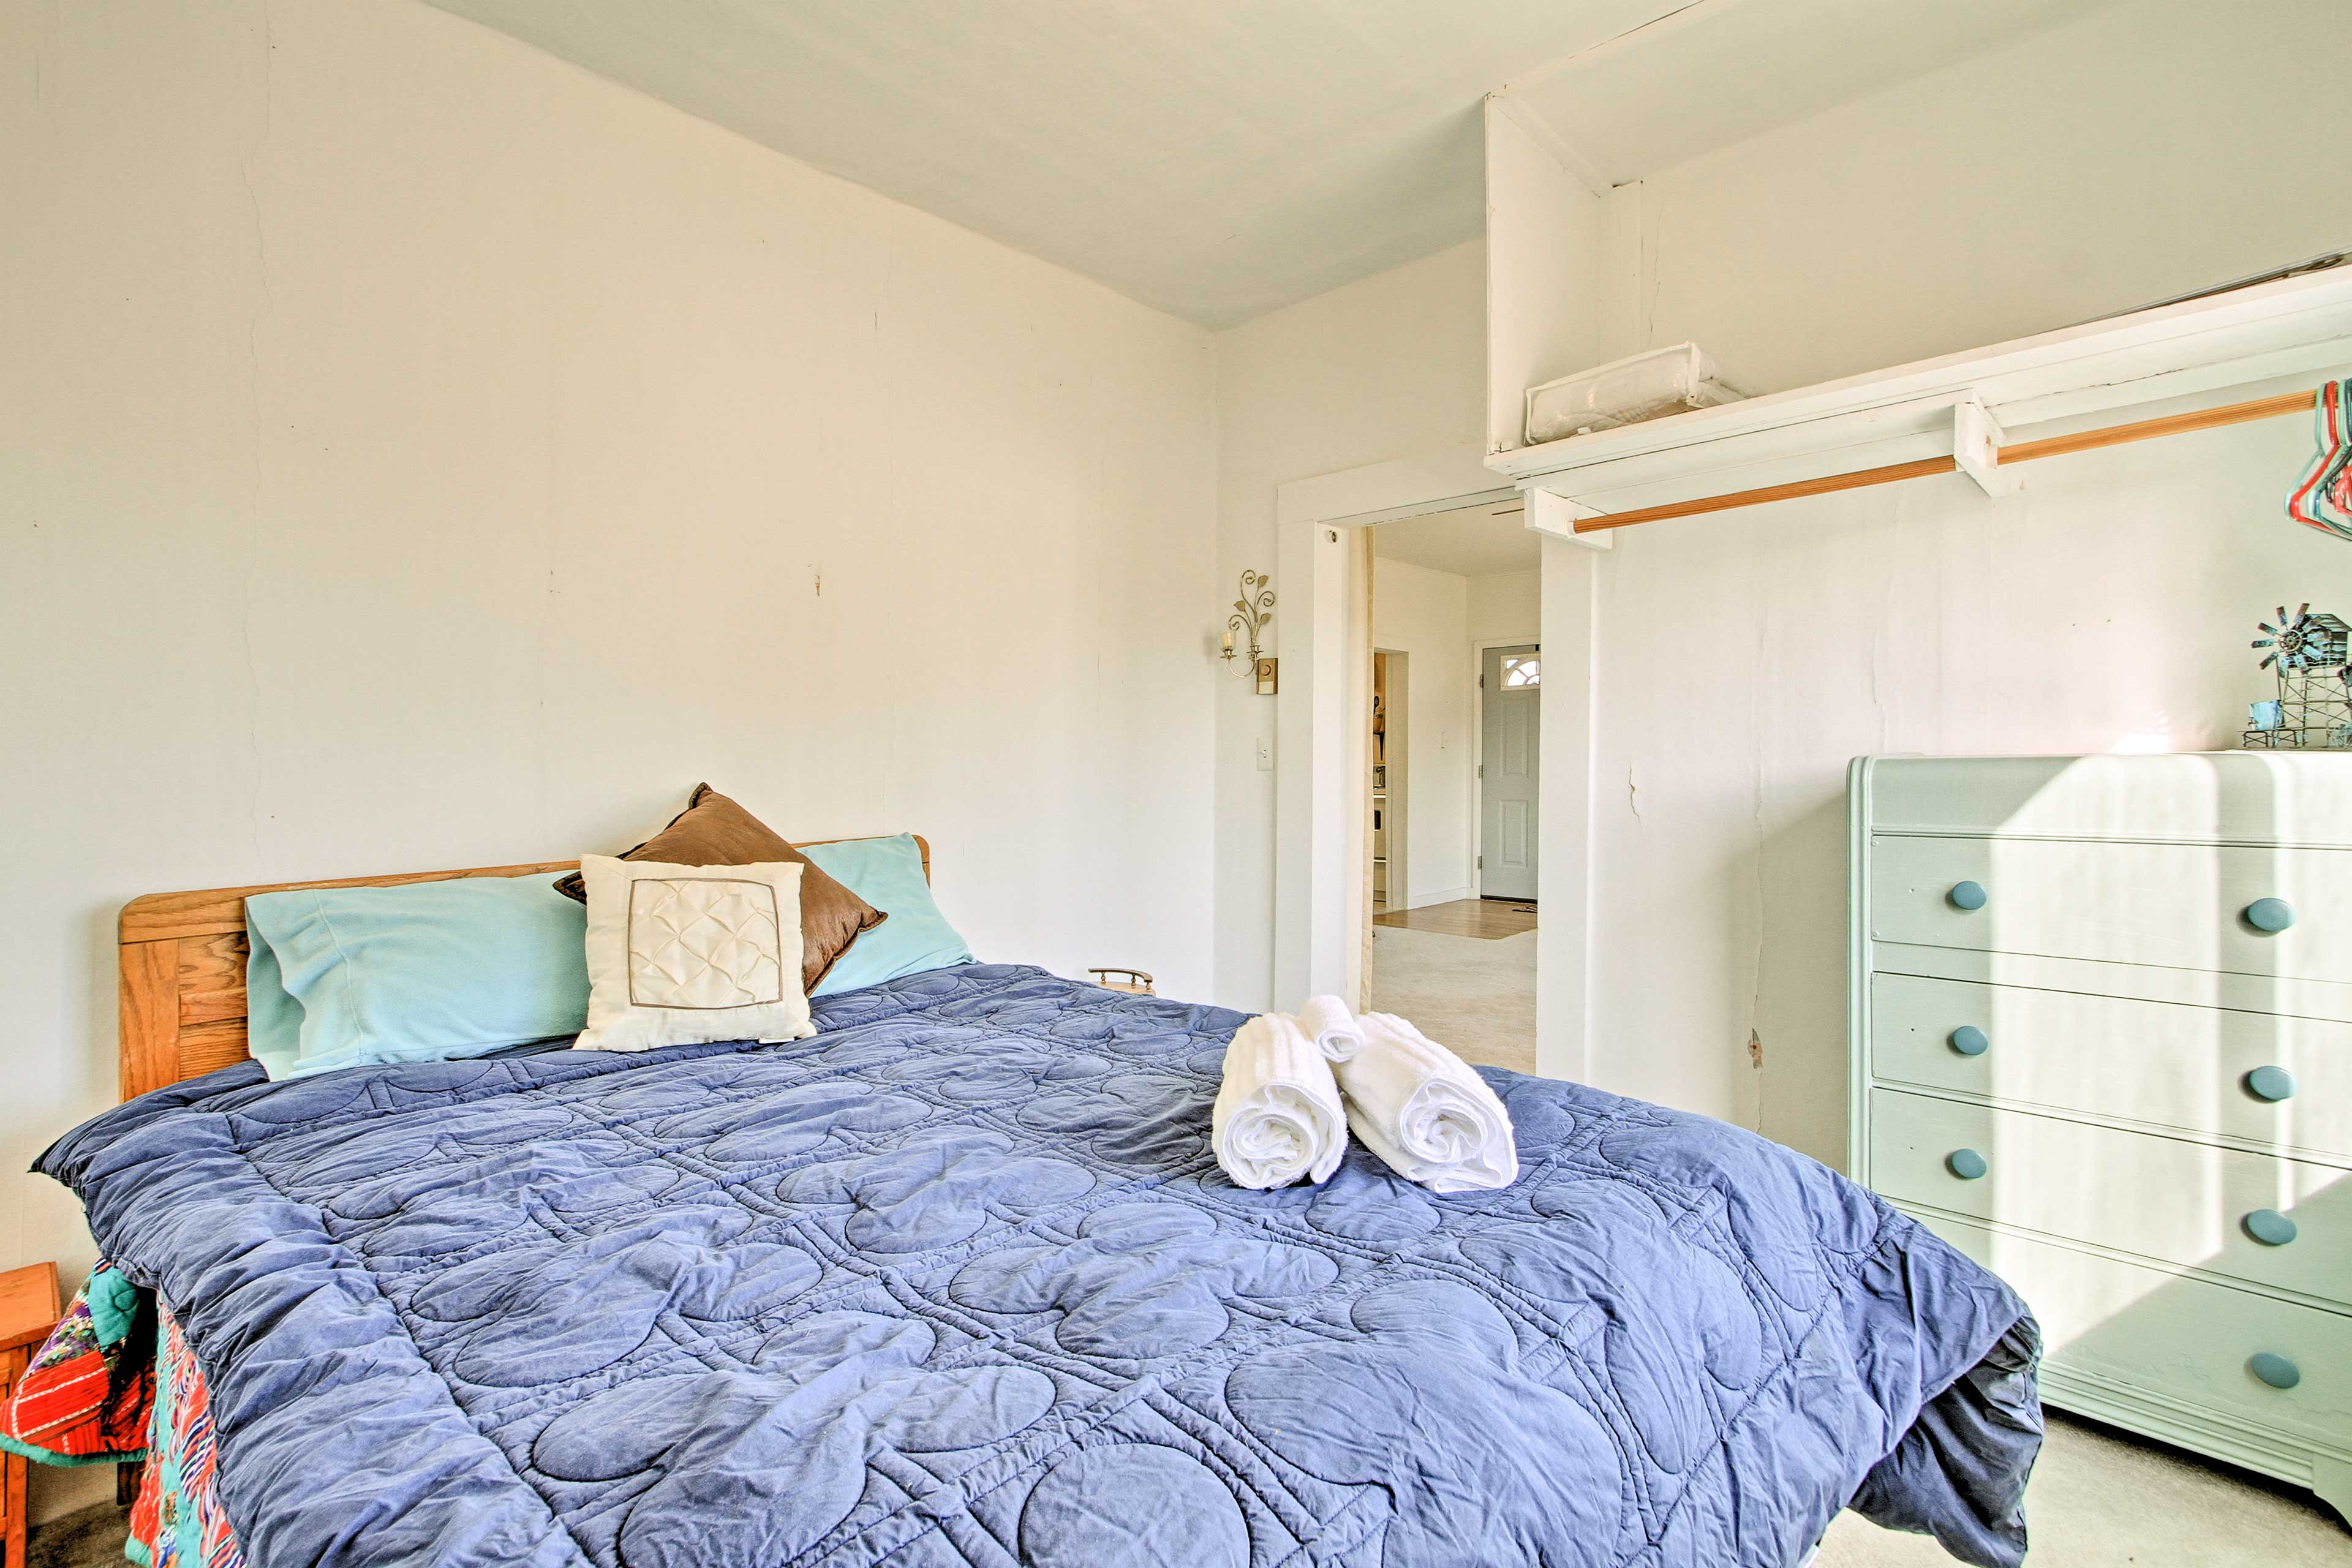 The master bedroom features a comfortable queen bed.